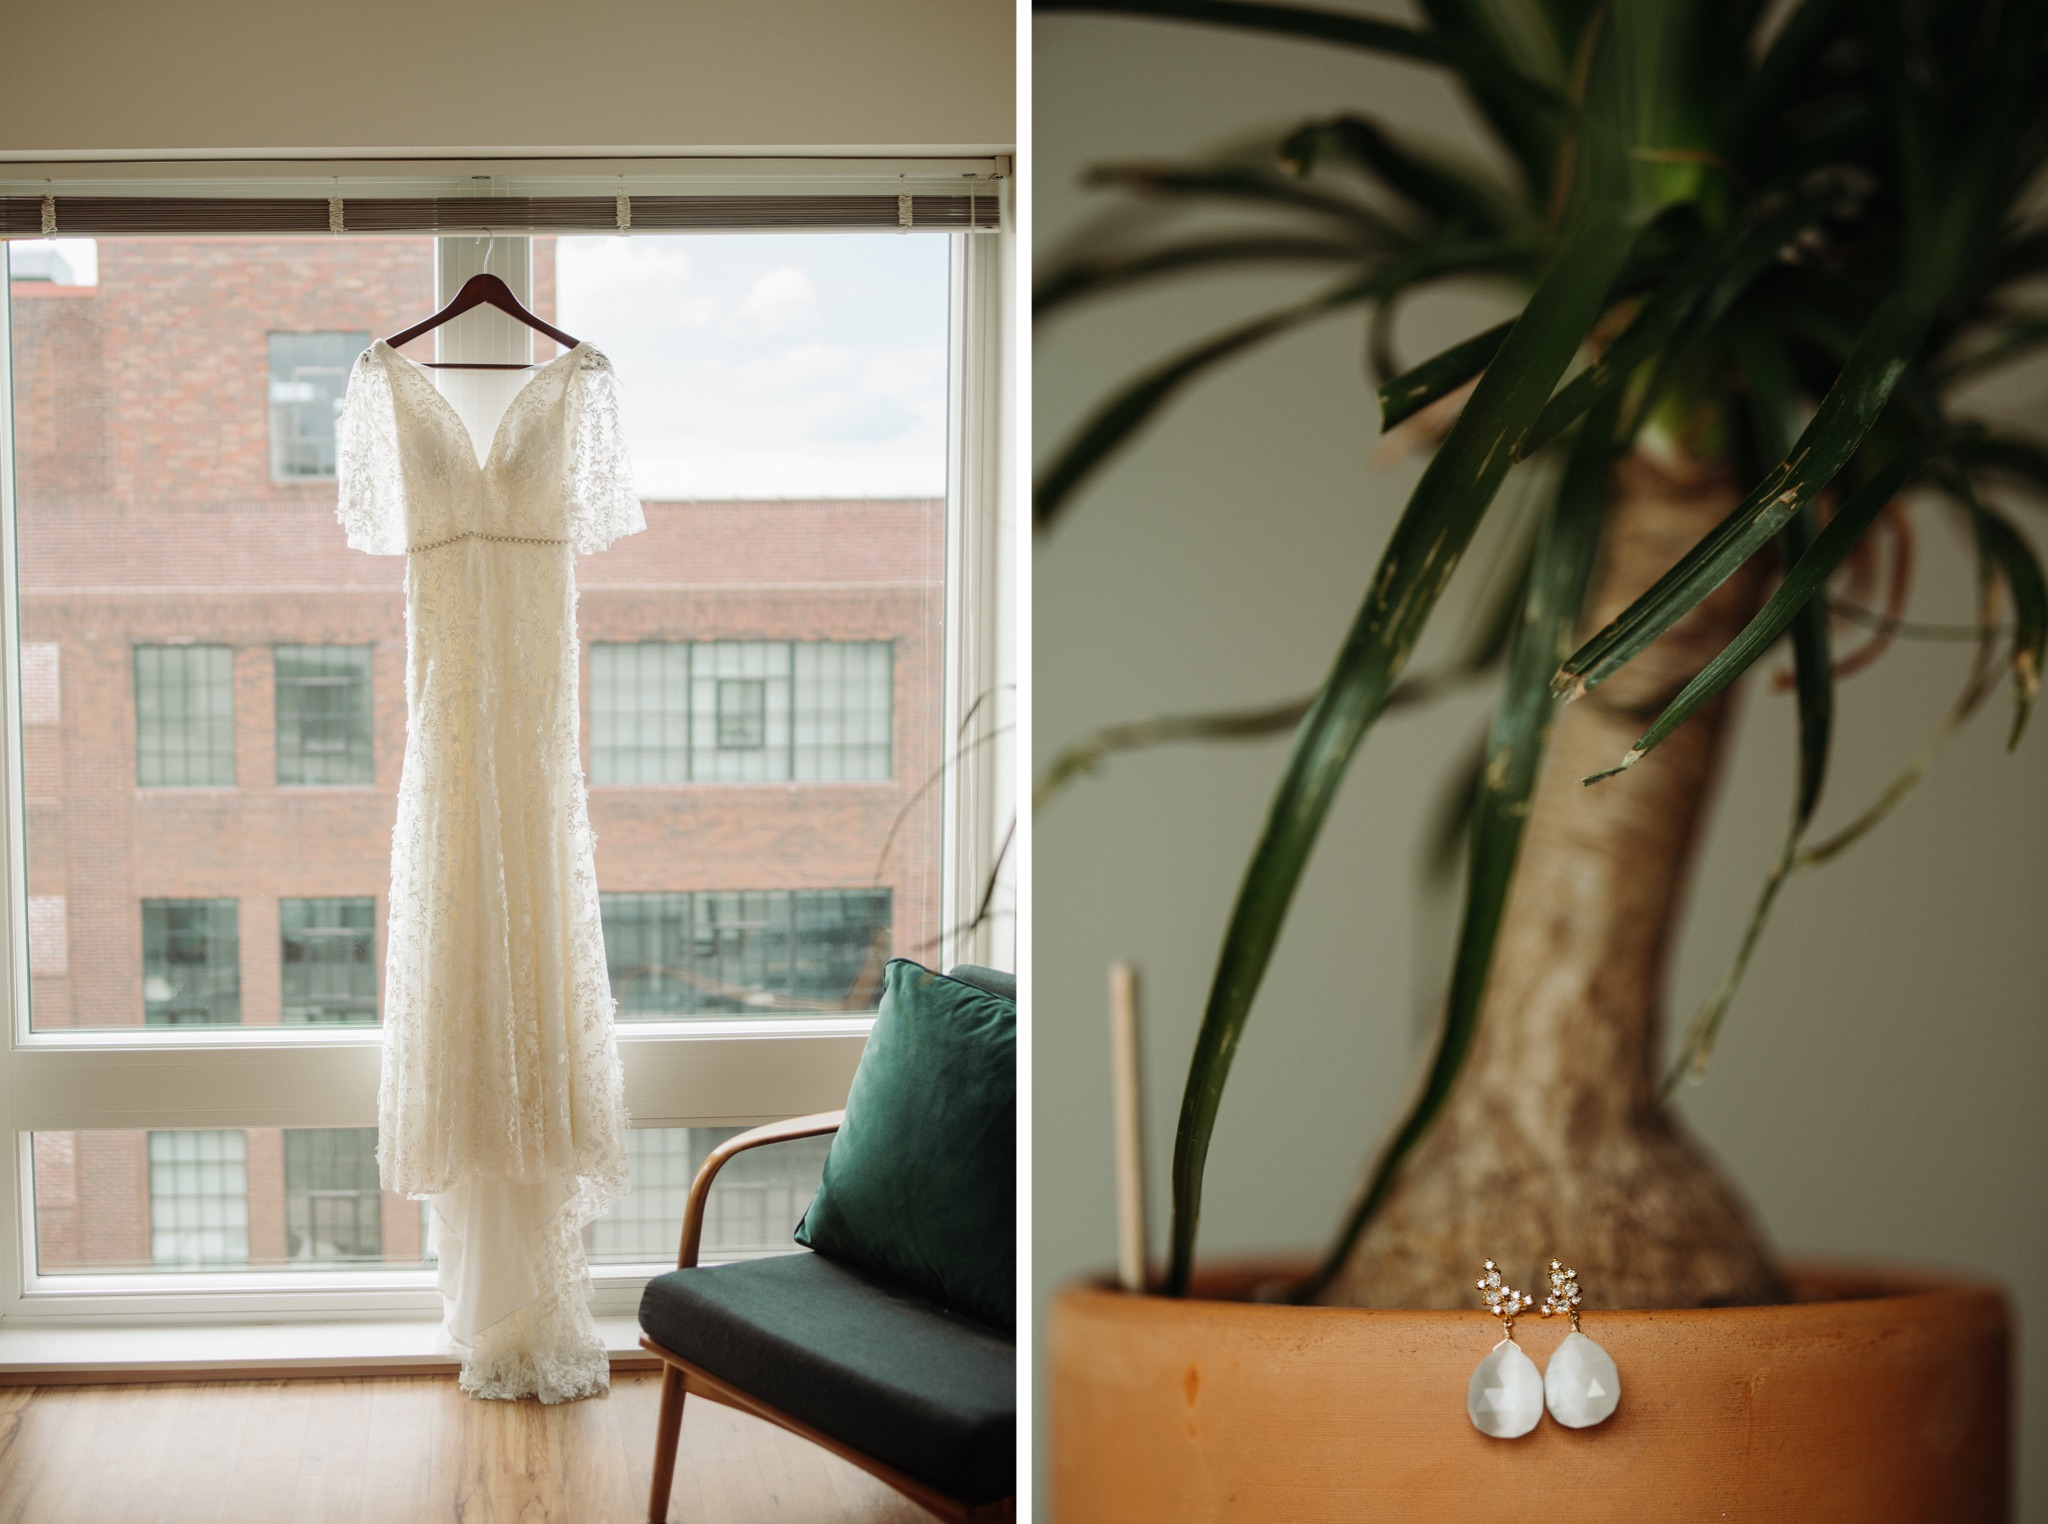 Wedding dress hanging on window, earrings sitting on a potted plant